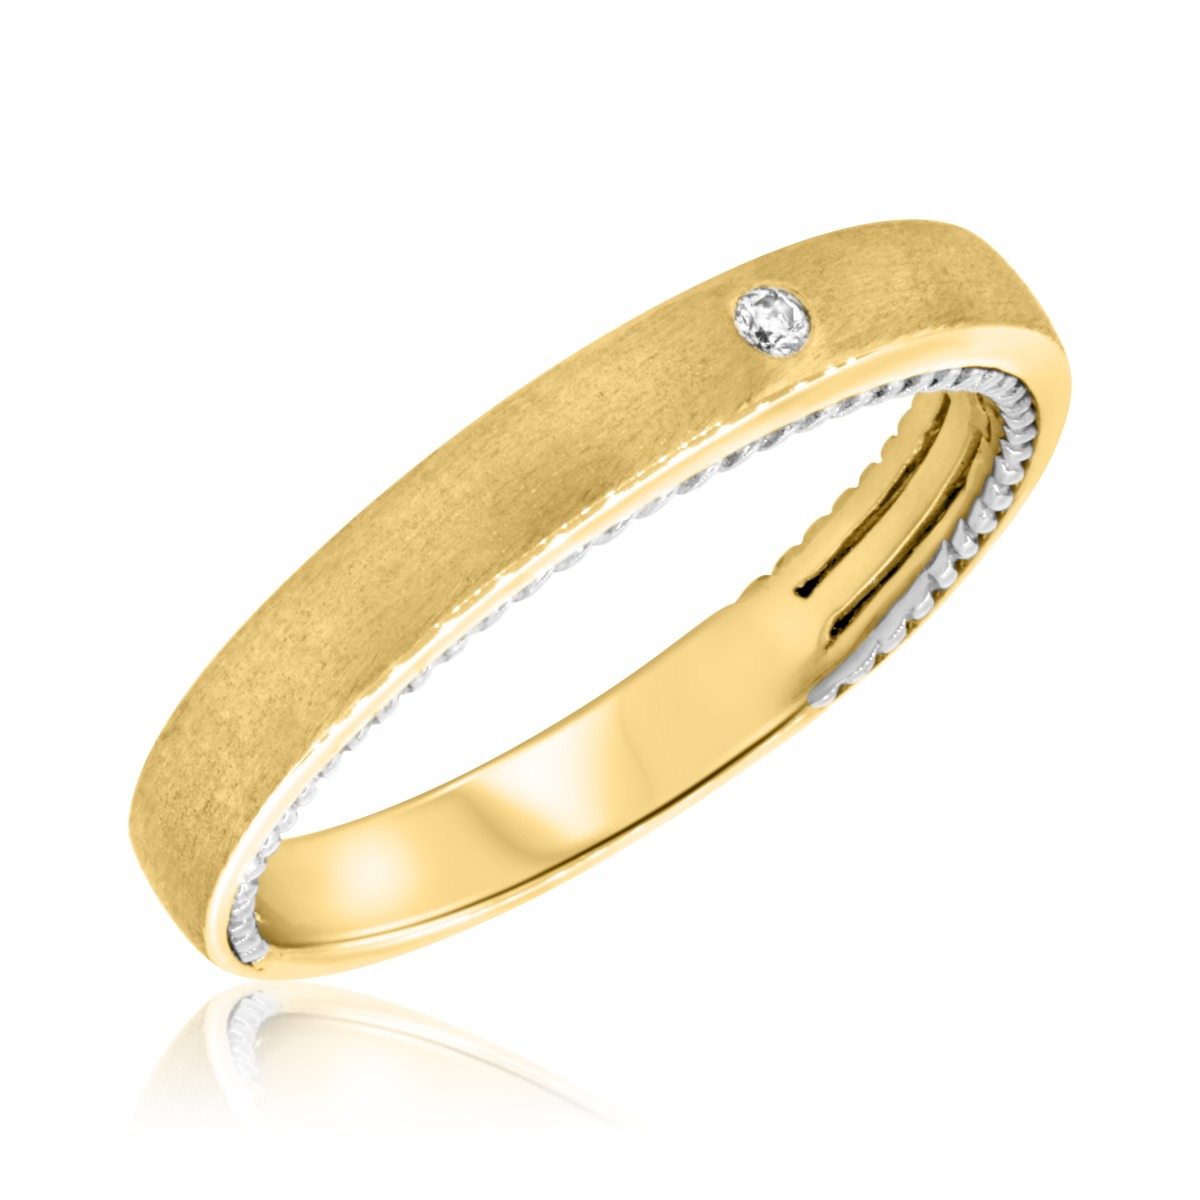 1/20 CT. T.W. Diamond Ladies Wedding Band  10K Yellow Gold